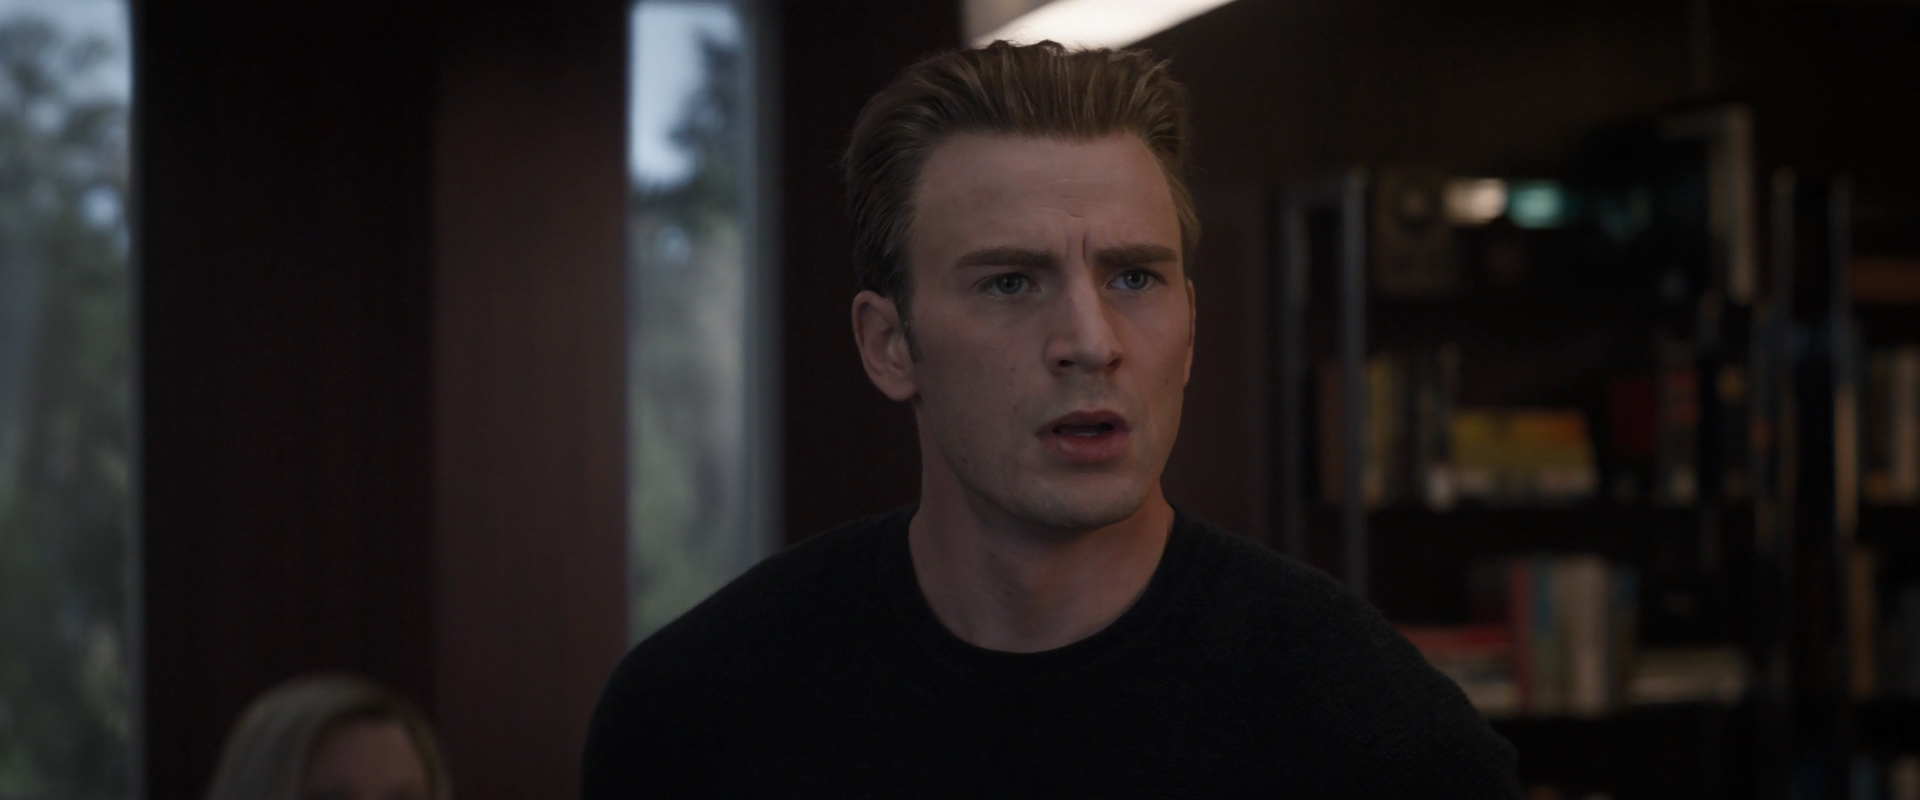 Over 40 Hires Stills from the Avengers: Endgame Trailer